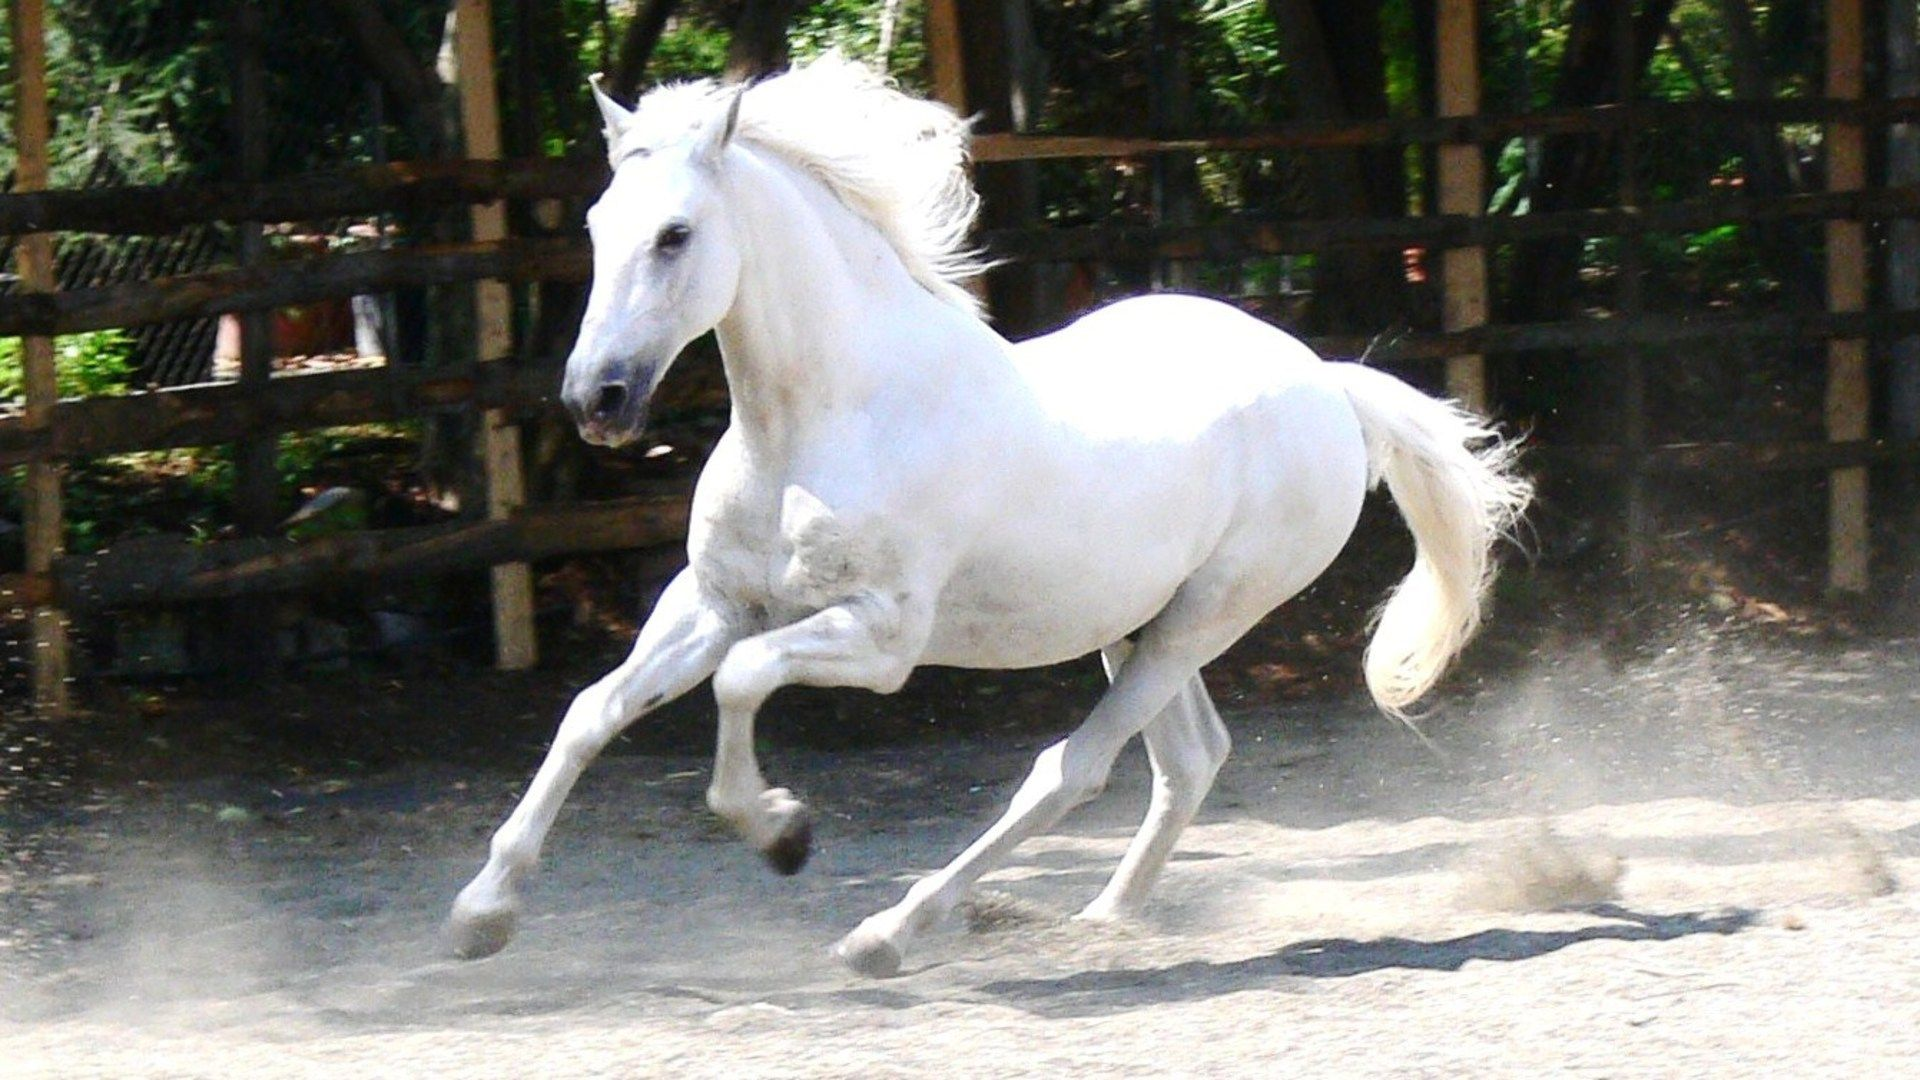 Horse Hd Widescreen Wallpapers For Laptop Horses White Horses Horse Wallpaper